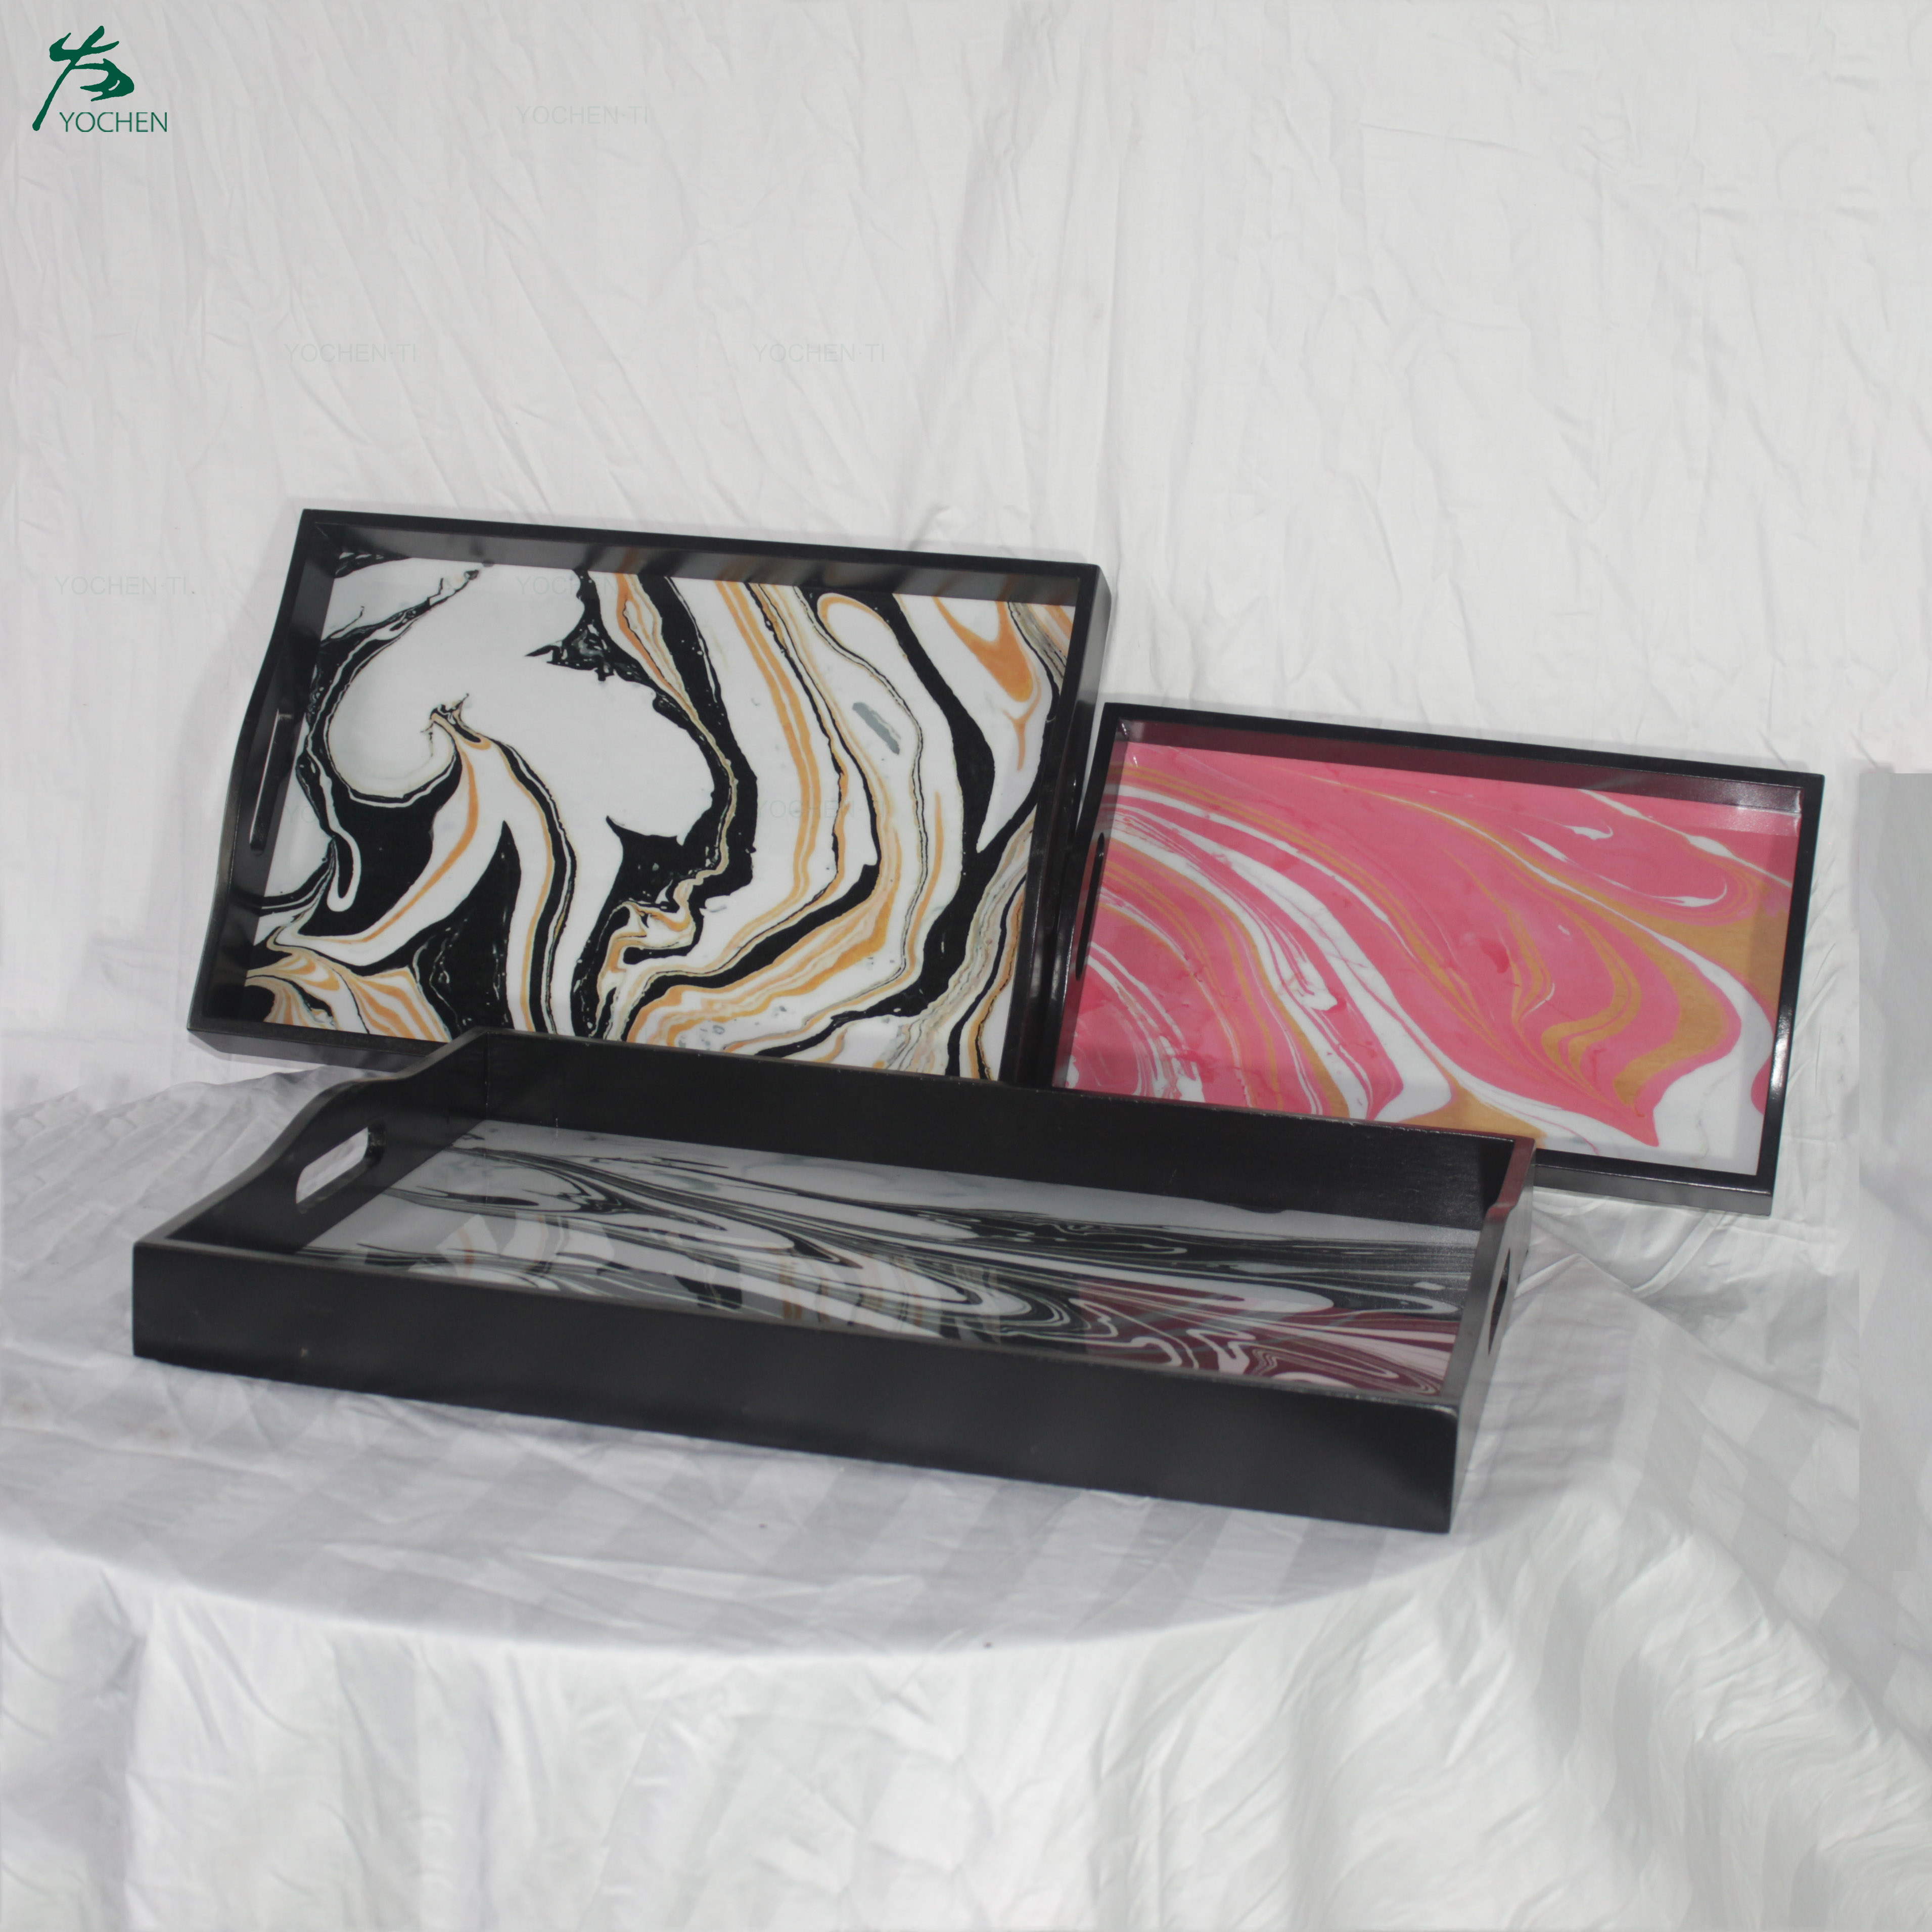 Black Marble Print Wooden Tray Resin Finish Lacquered Frame No Glass Rectangle Serving Tray